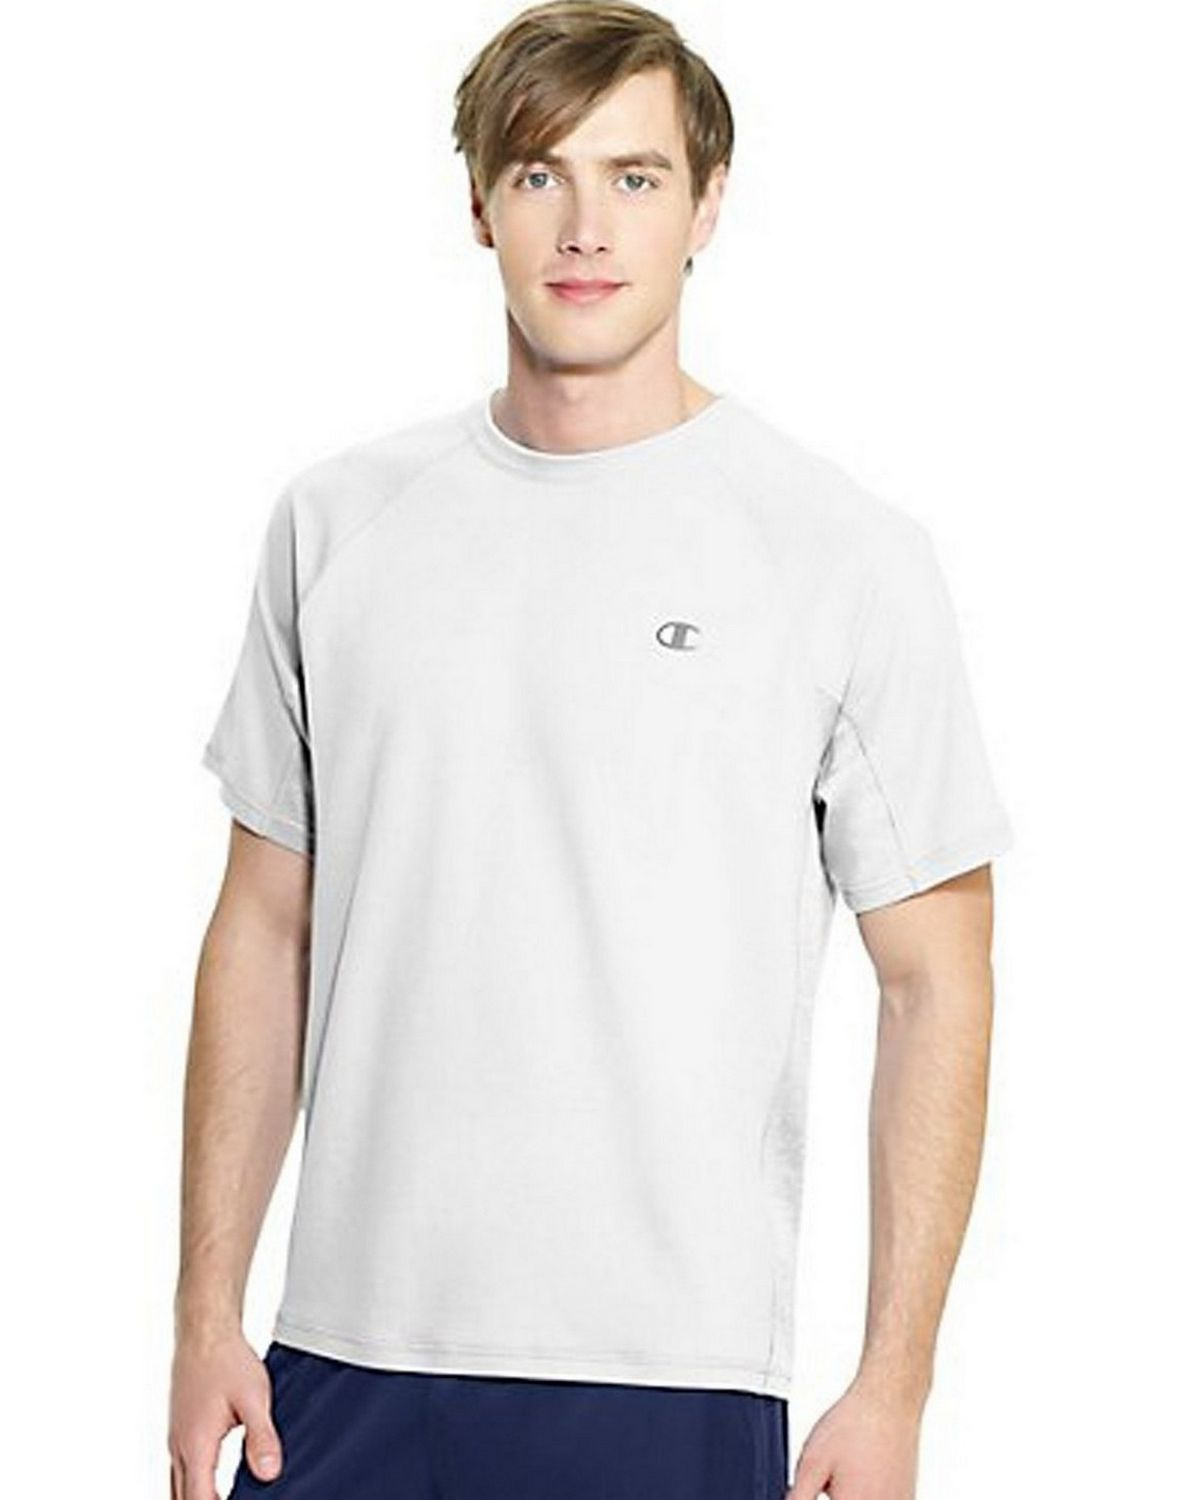 Champion T6608 Vapor PowerTrain Colorblock Tee - White - S T6608